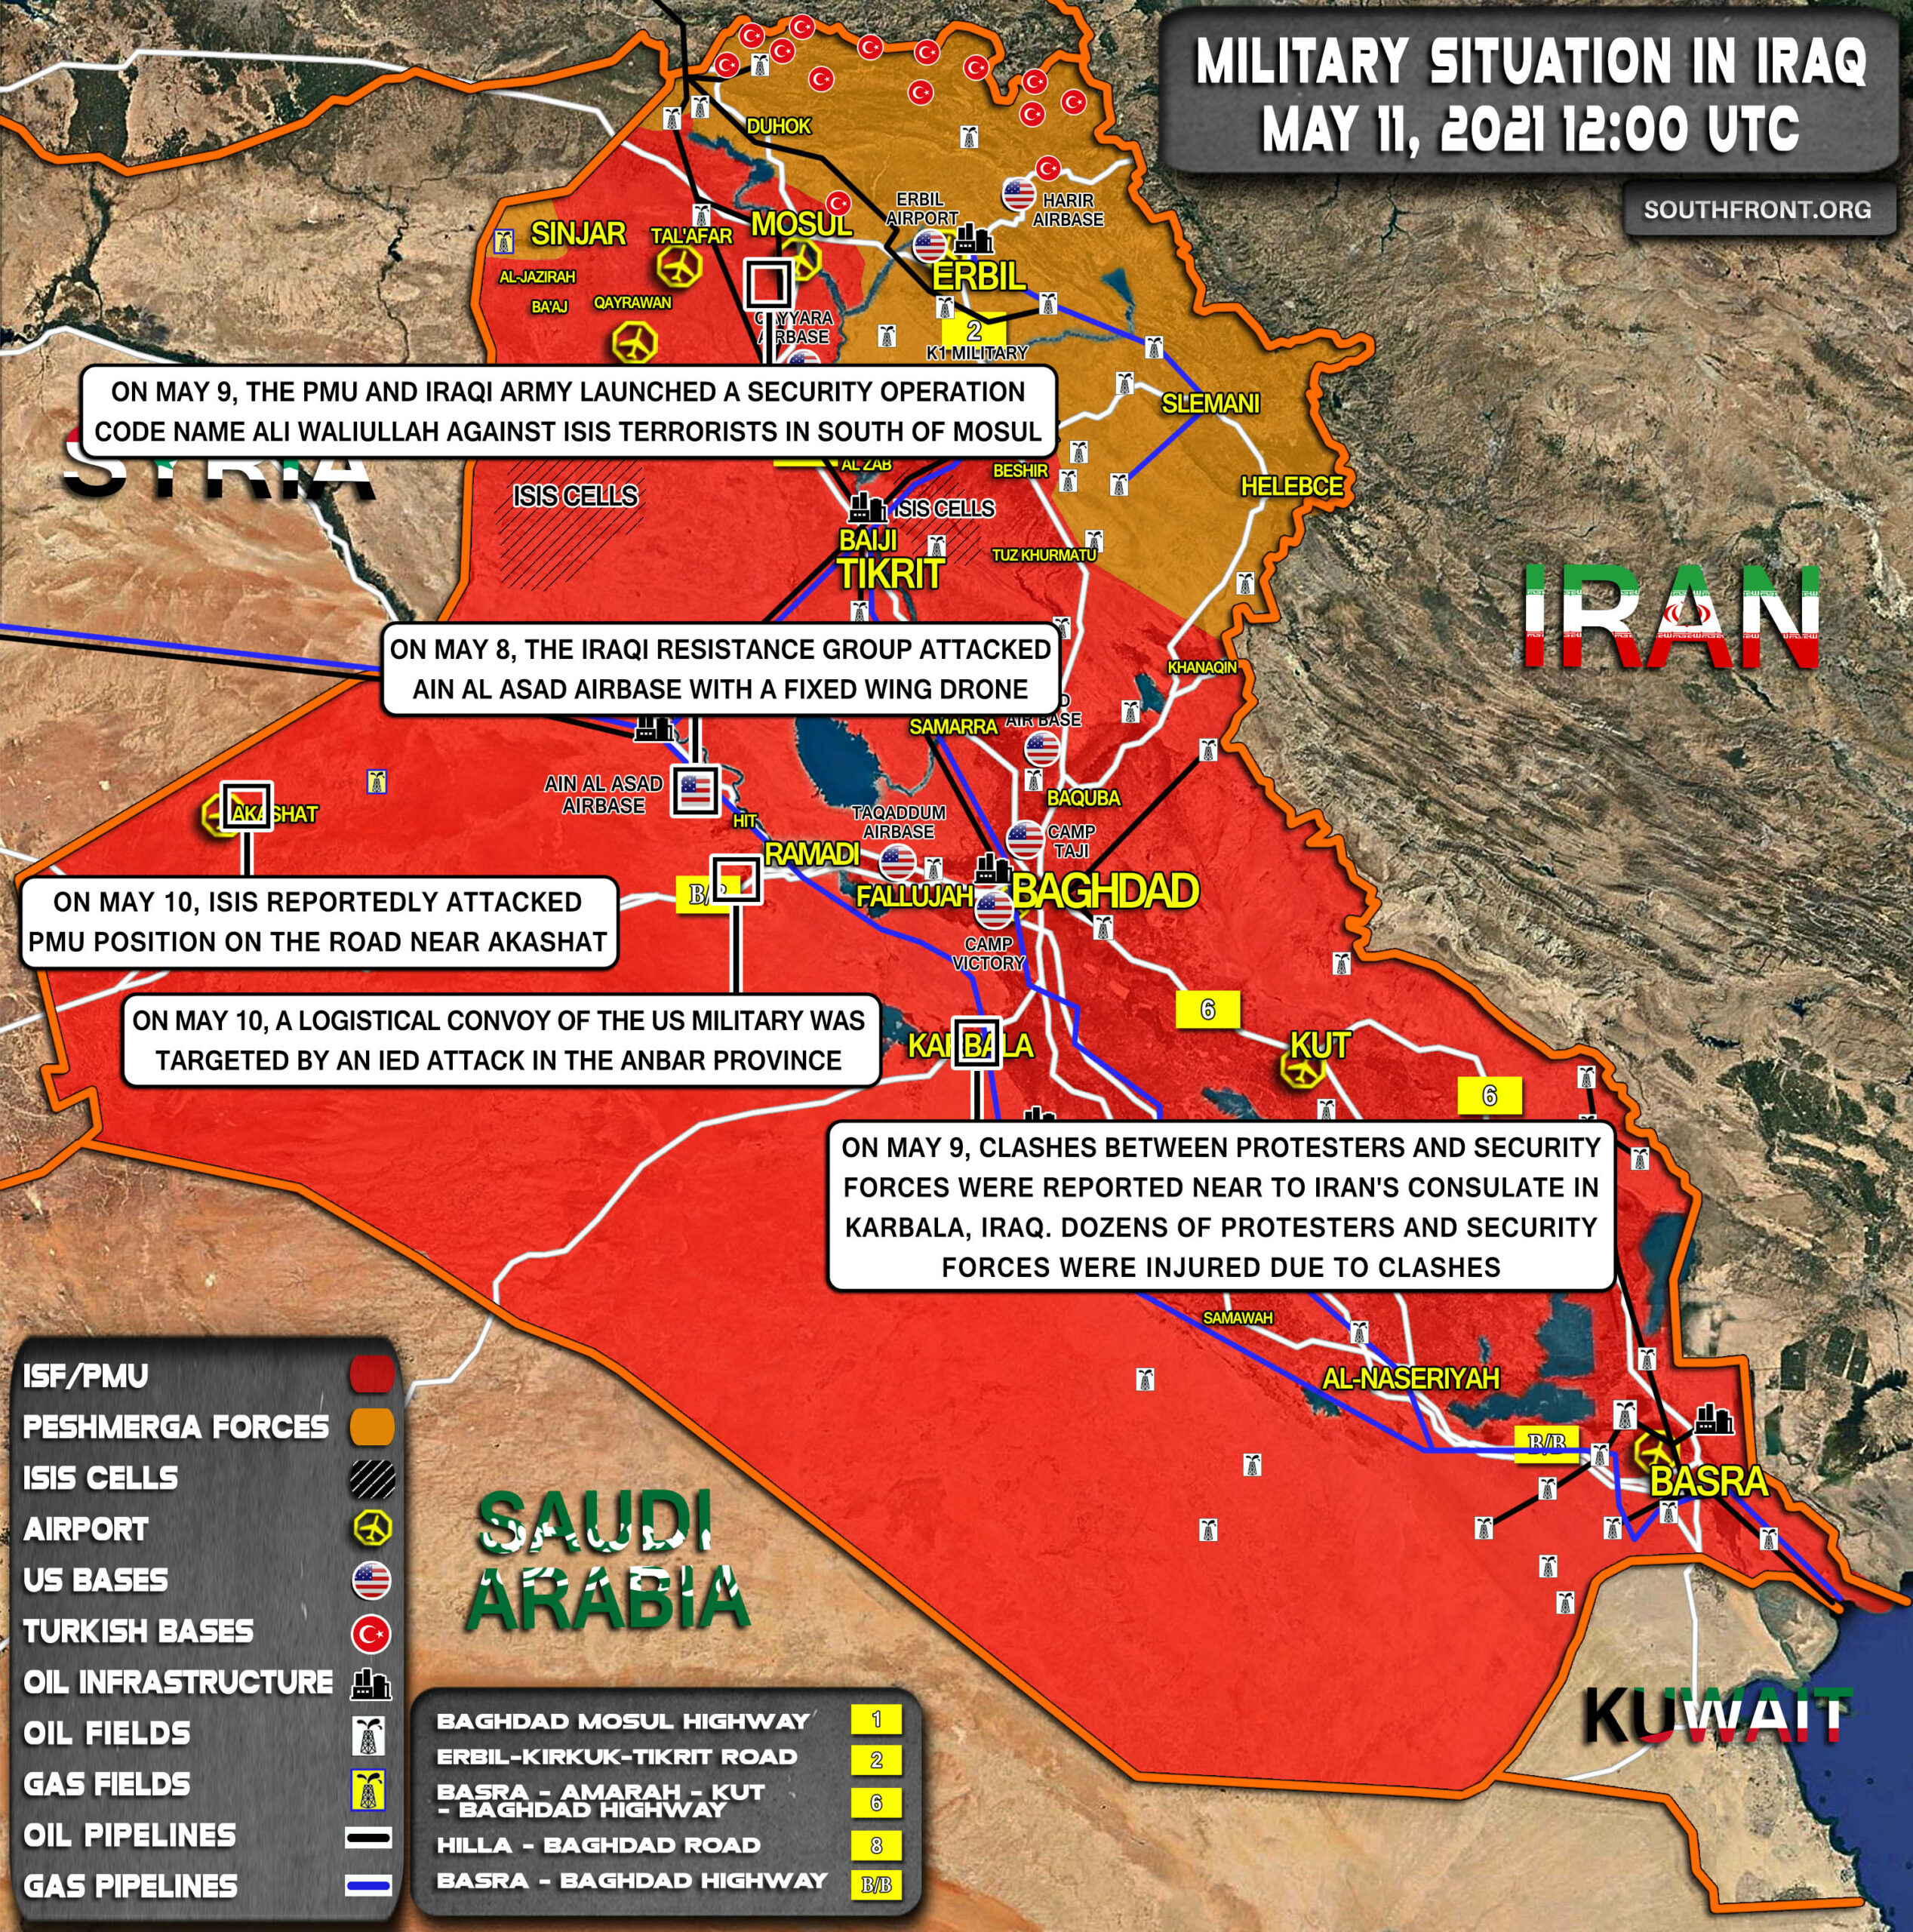 Military Situation In Iraq On May 11, 2021 (Map Update)